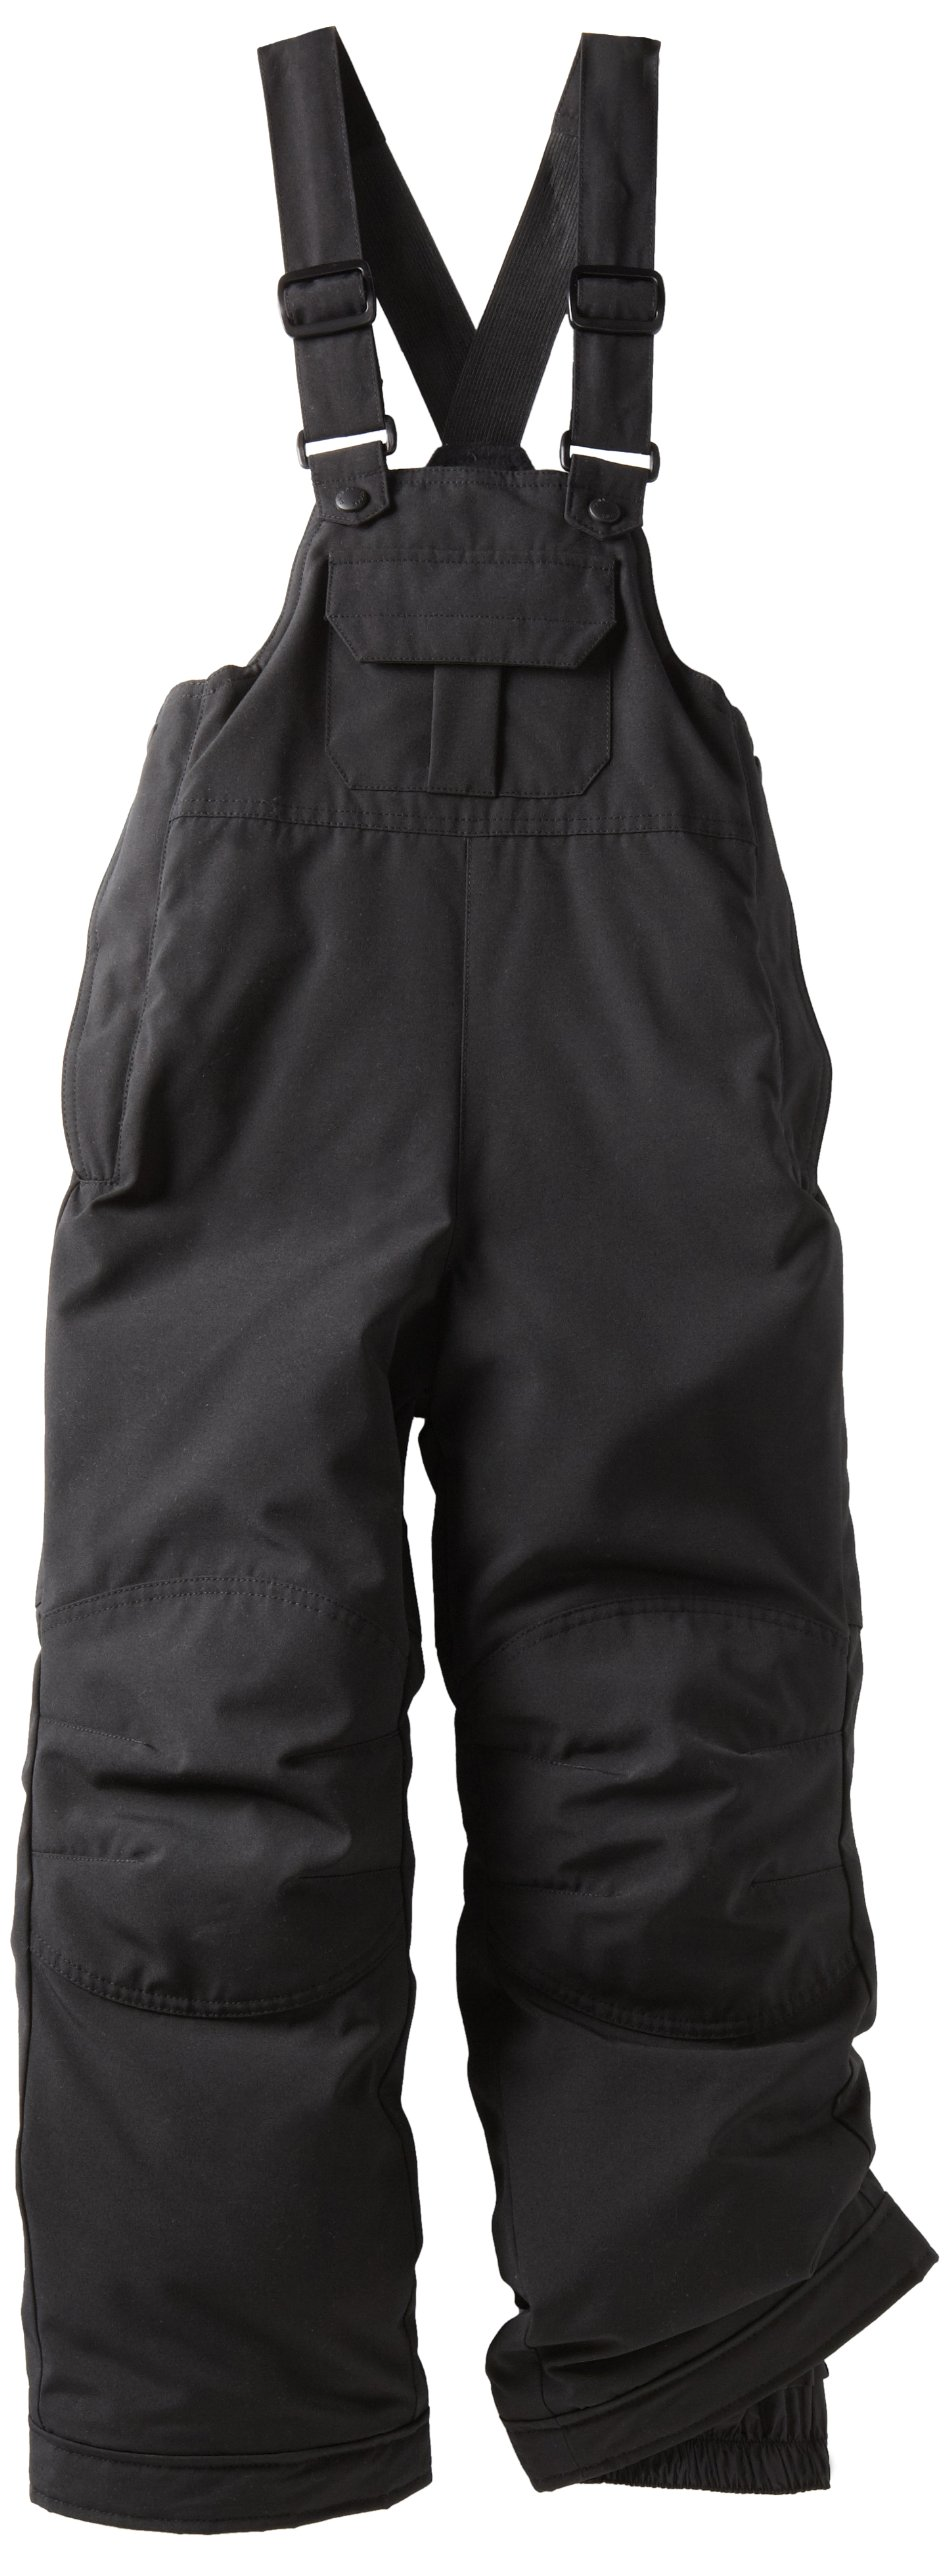 Canada Goose Boys' Snow Pants (Black, Large)